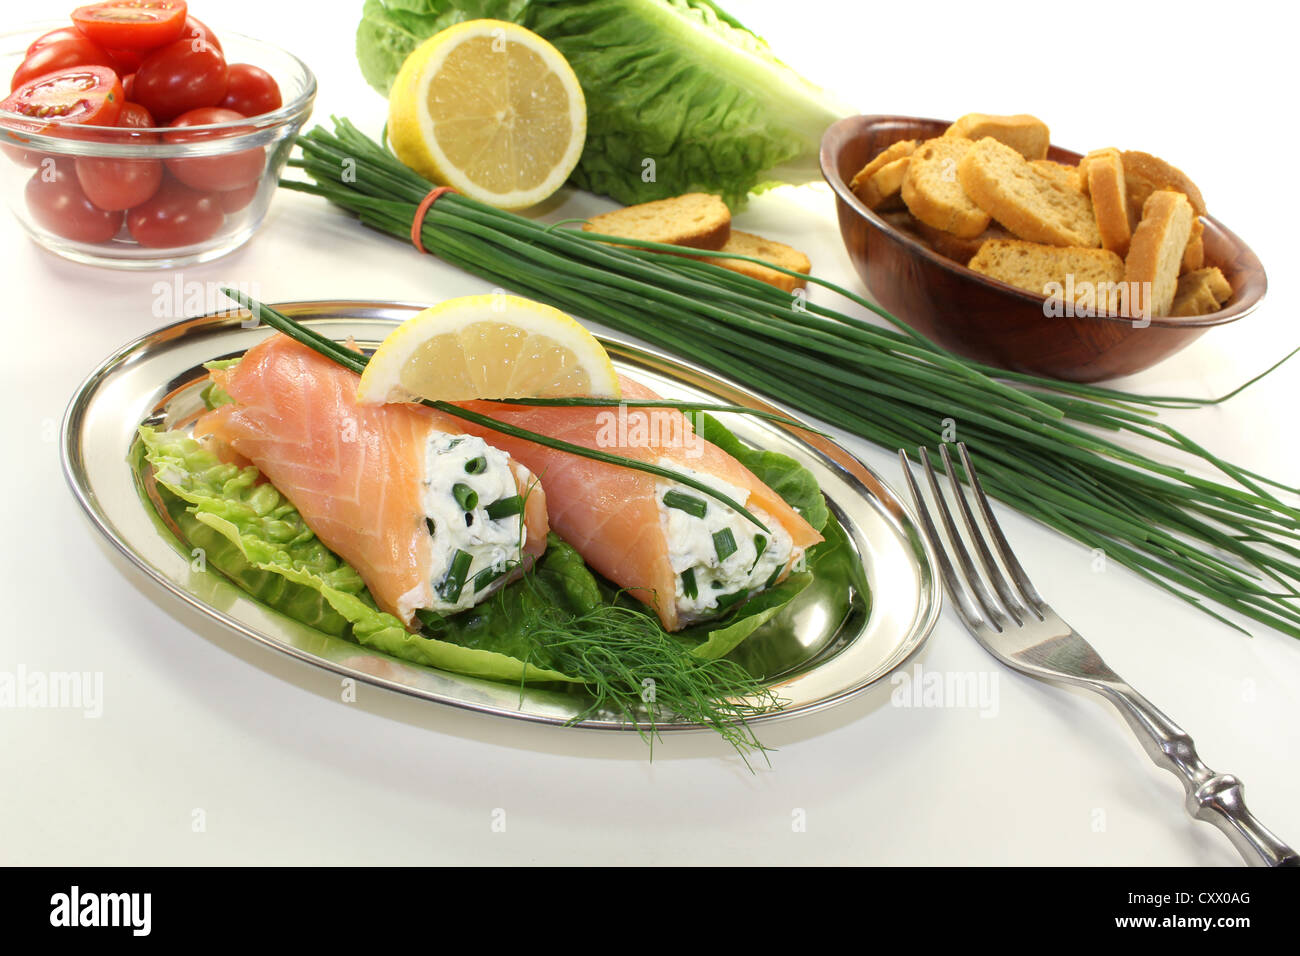 smoked salmon rolls with cream cheese, chives and a lemon slice - Stock Image